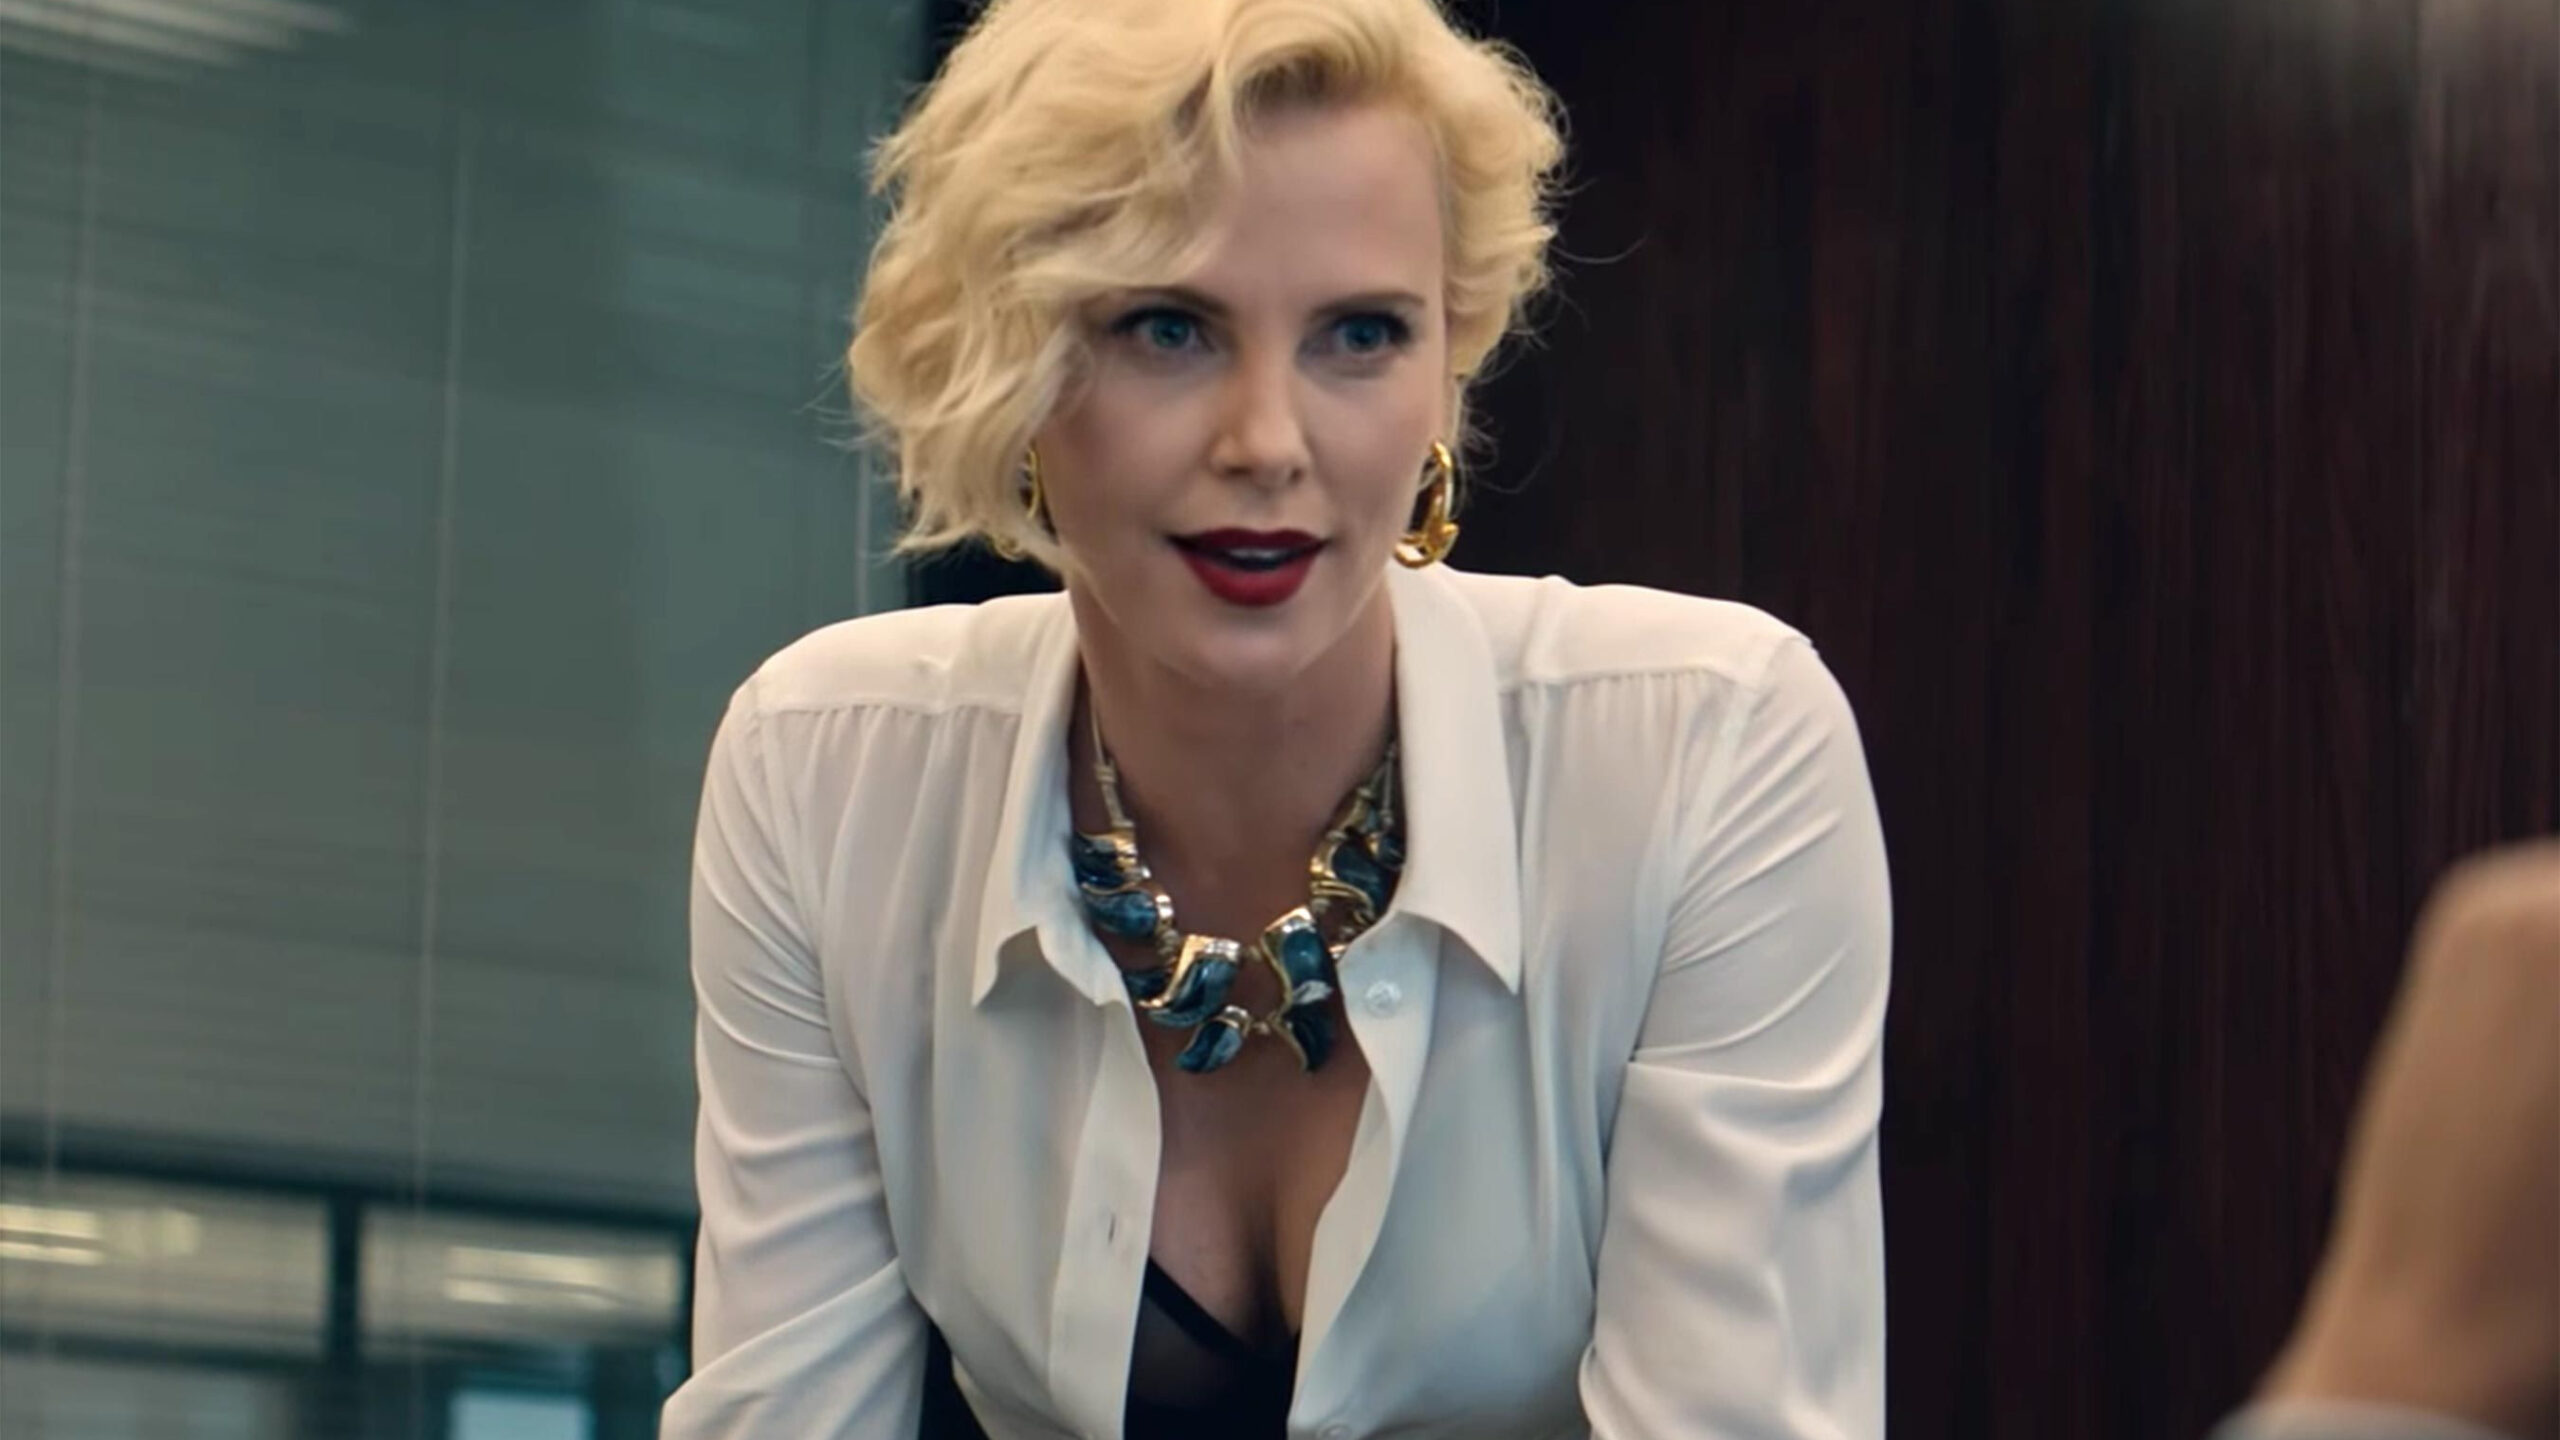 Charlize Theron Is Ready To Remake Die Hard As A Lesbian Lead